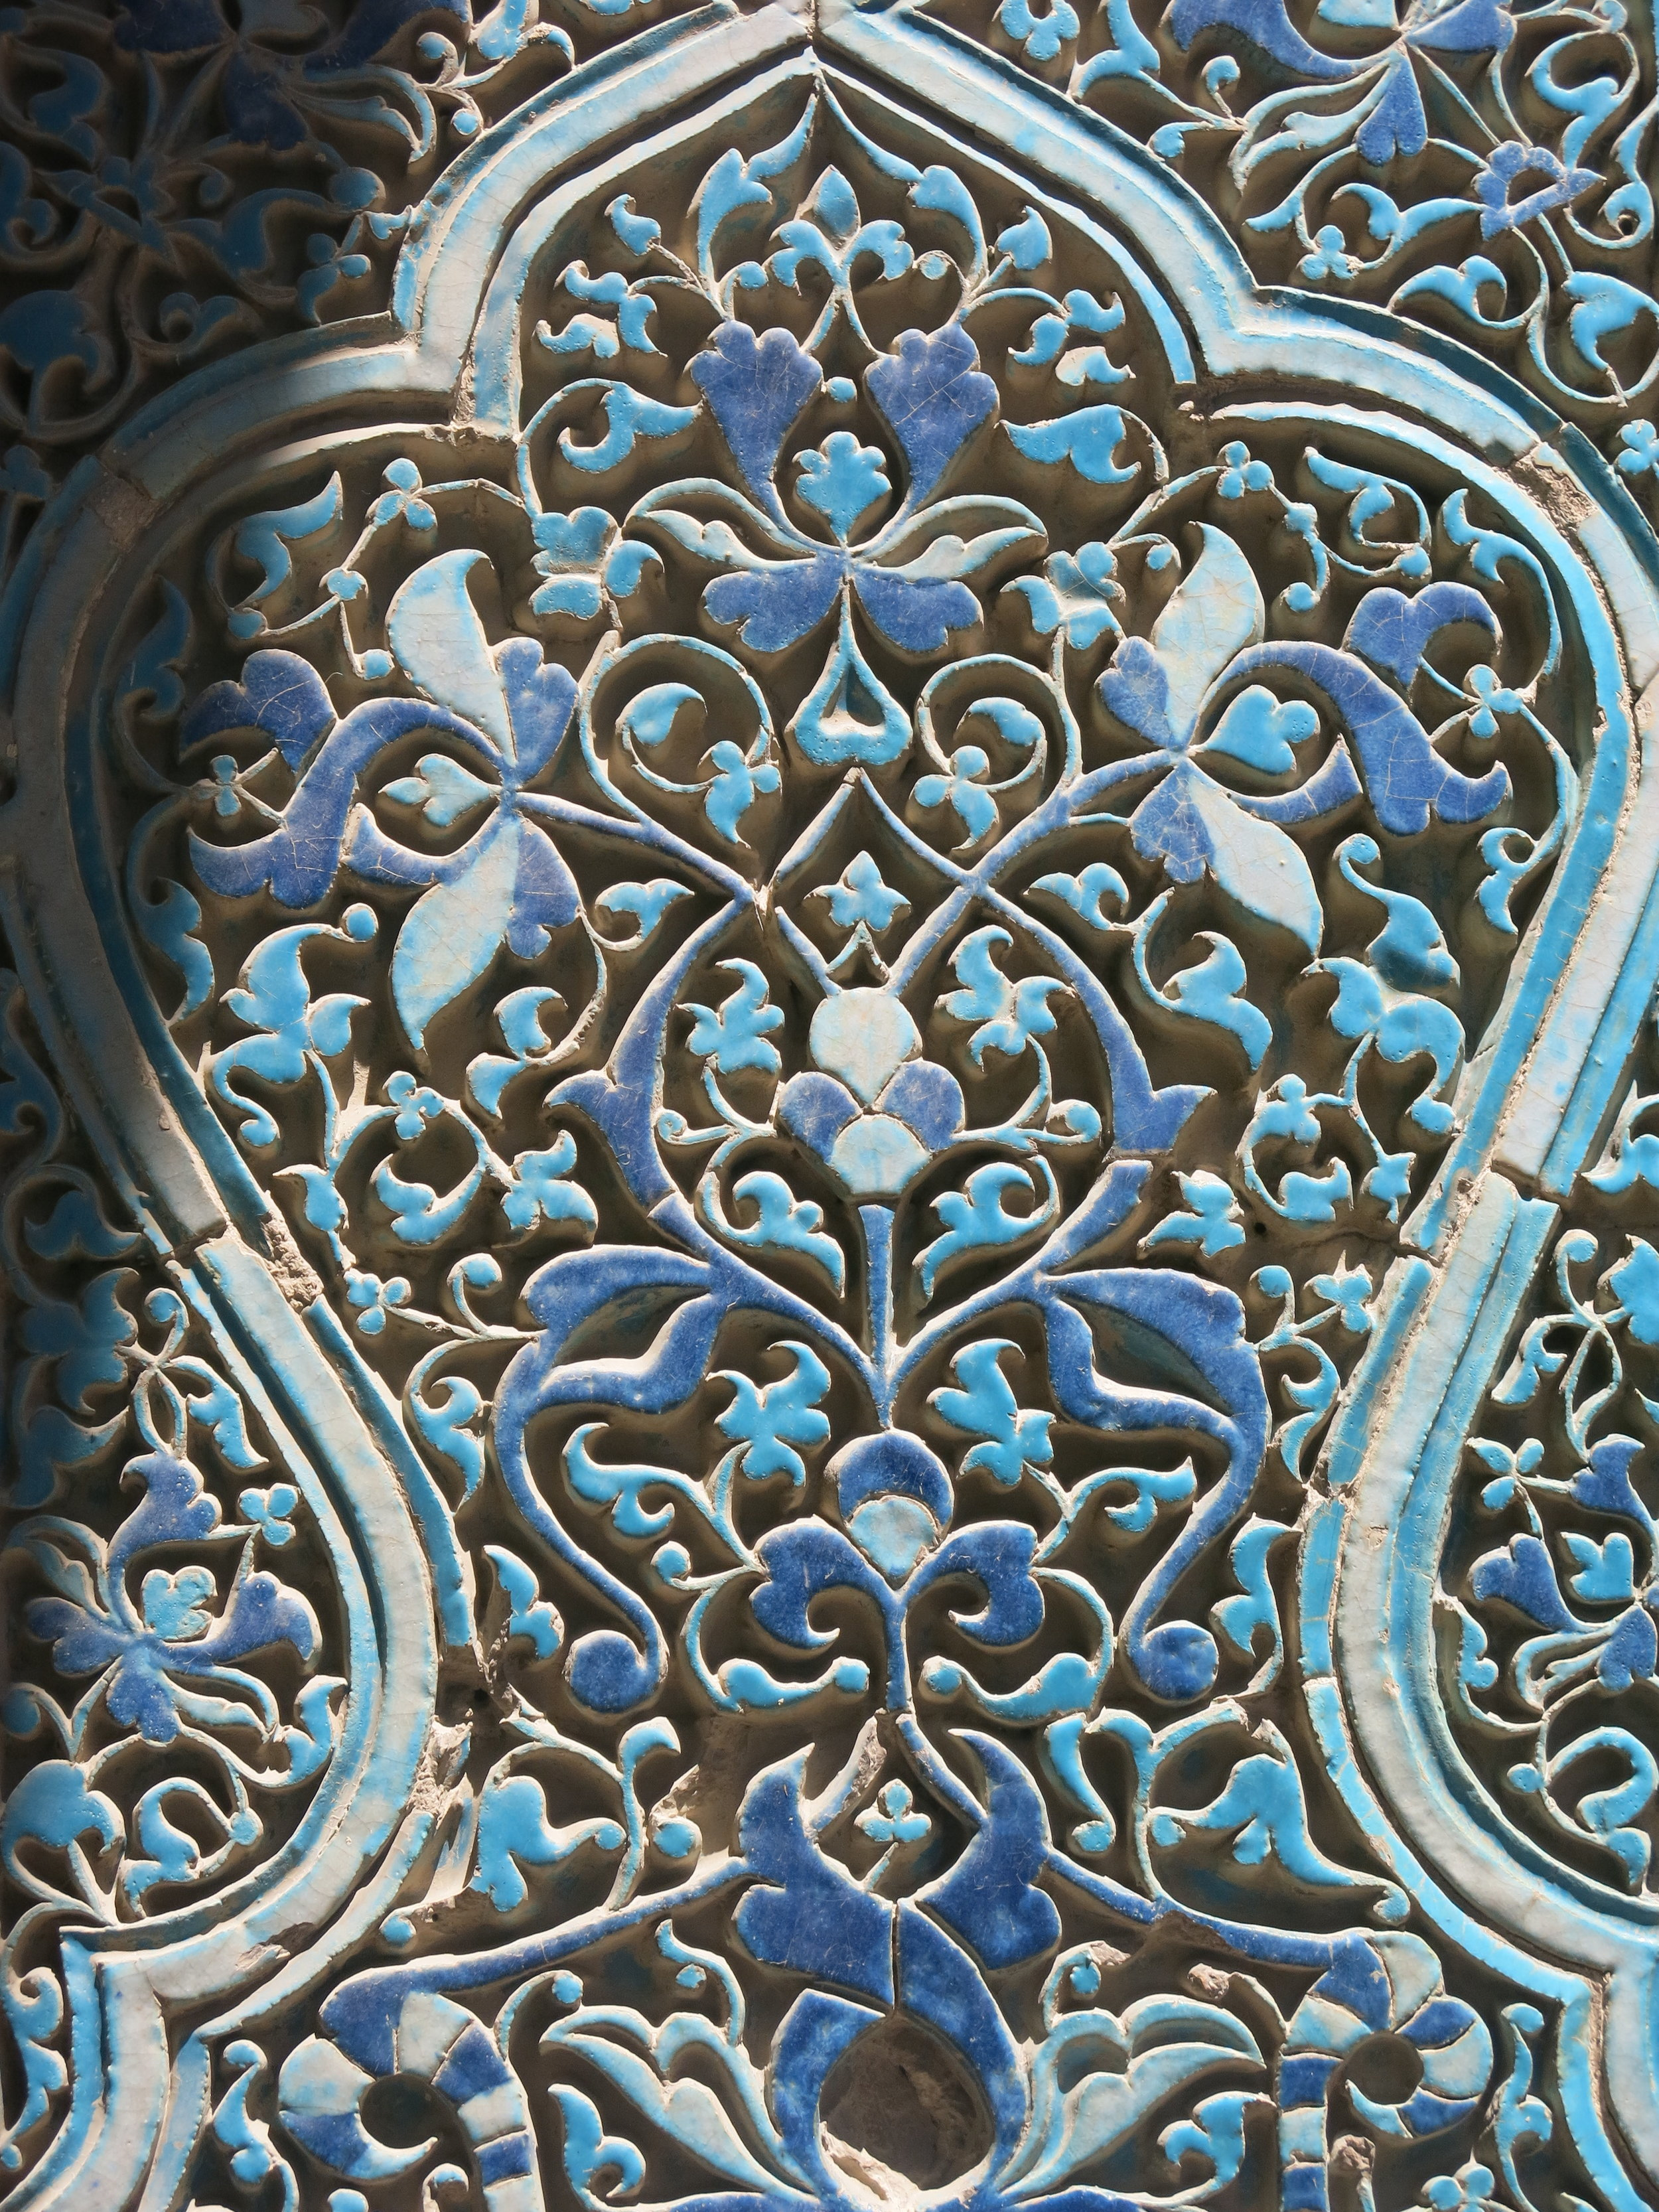 An explosion of architectural details in all shades of blue